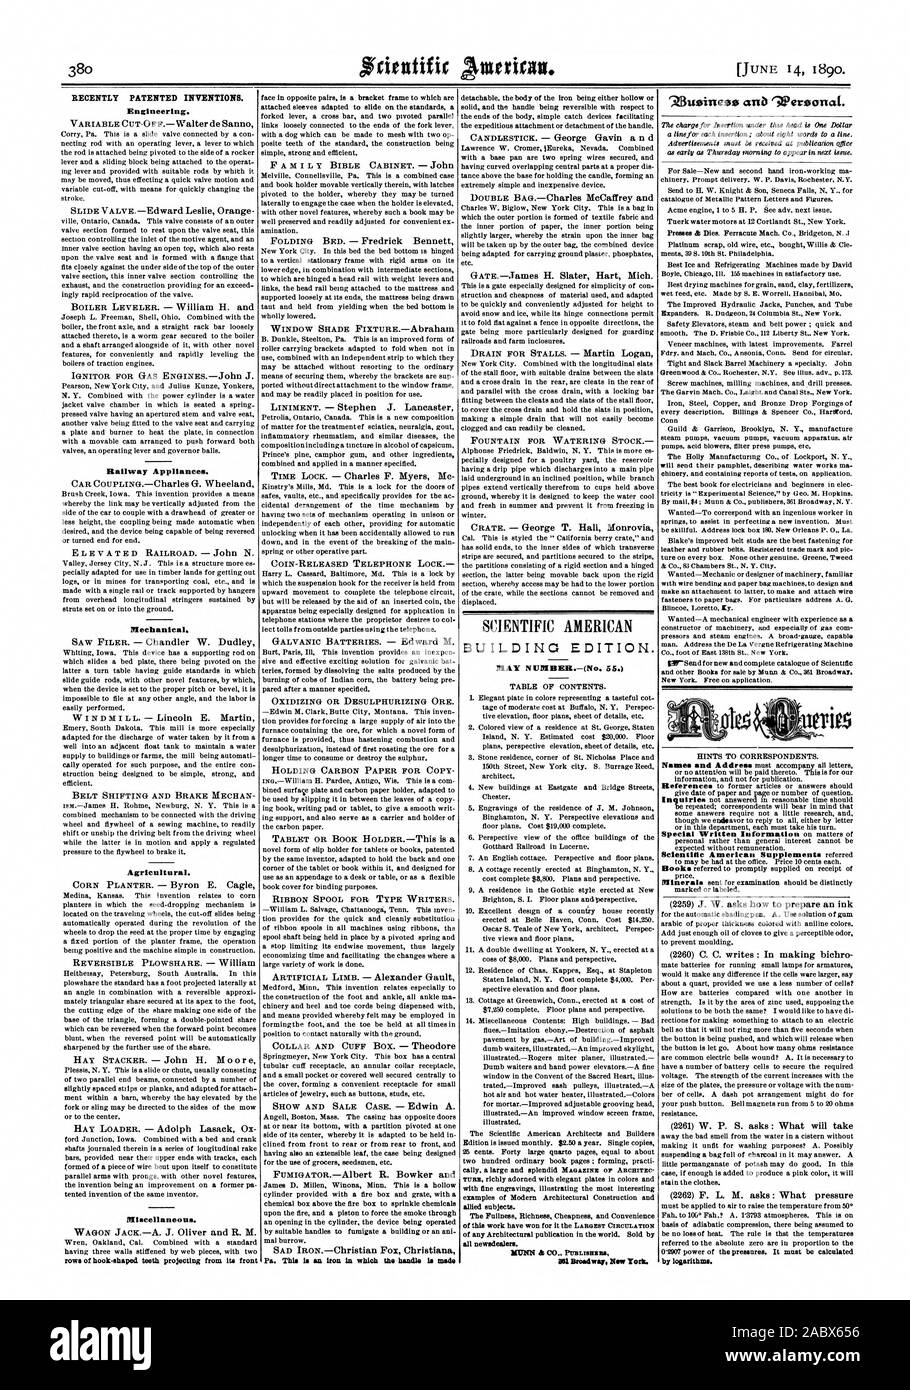 RECENTLY PATENTED INVENTIONS. Engineering. Railway Appliances. Mechanical. Agricultural. Miscellaneous. all newsdealer'. by logarithms., scientific american, 1890-06-11 Stock Photo